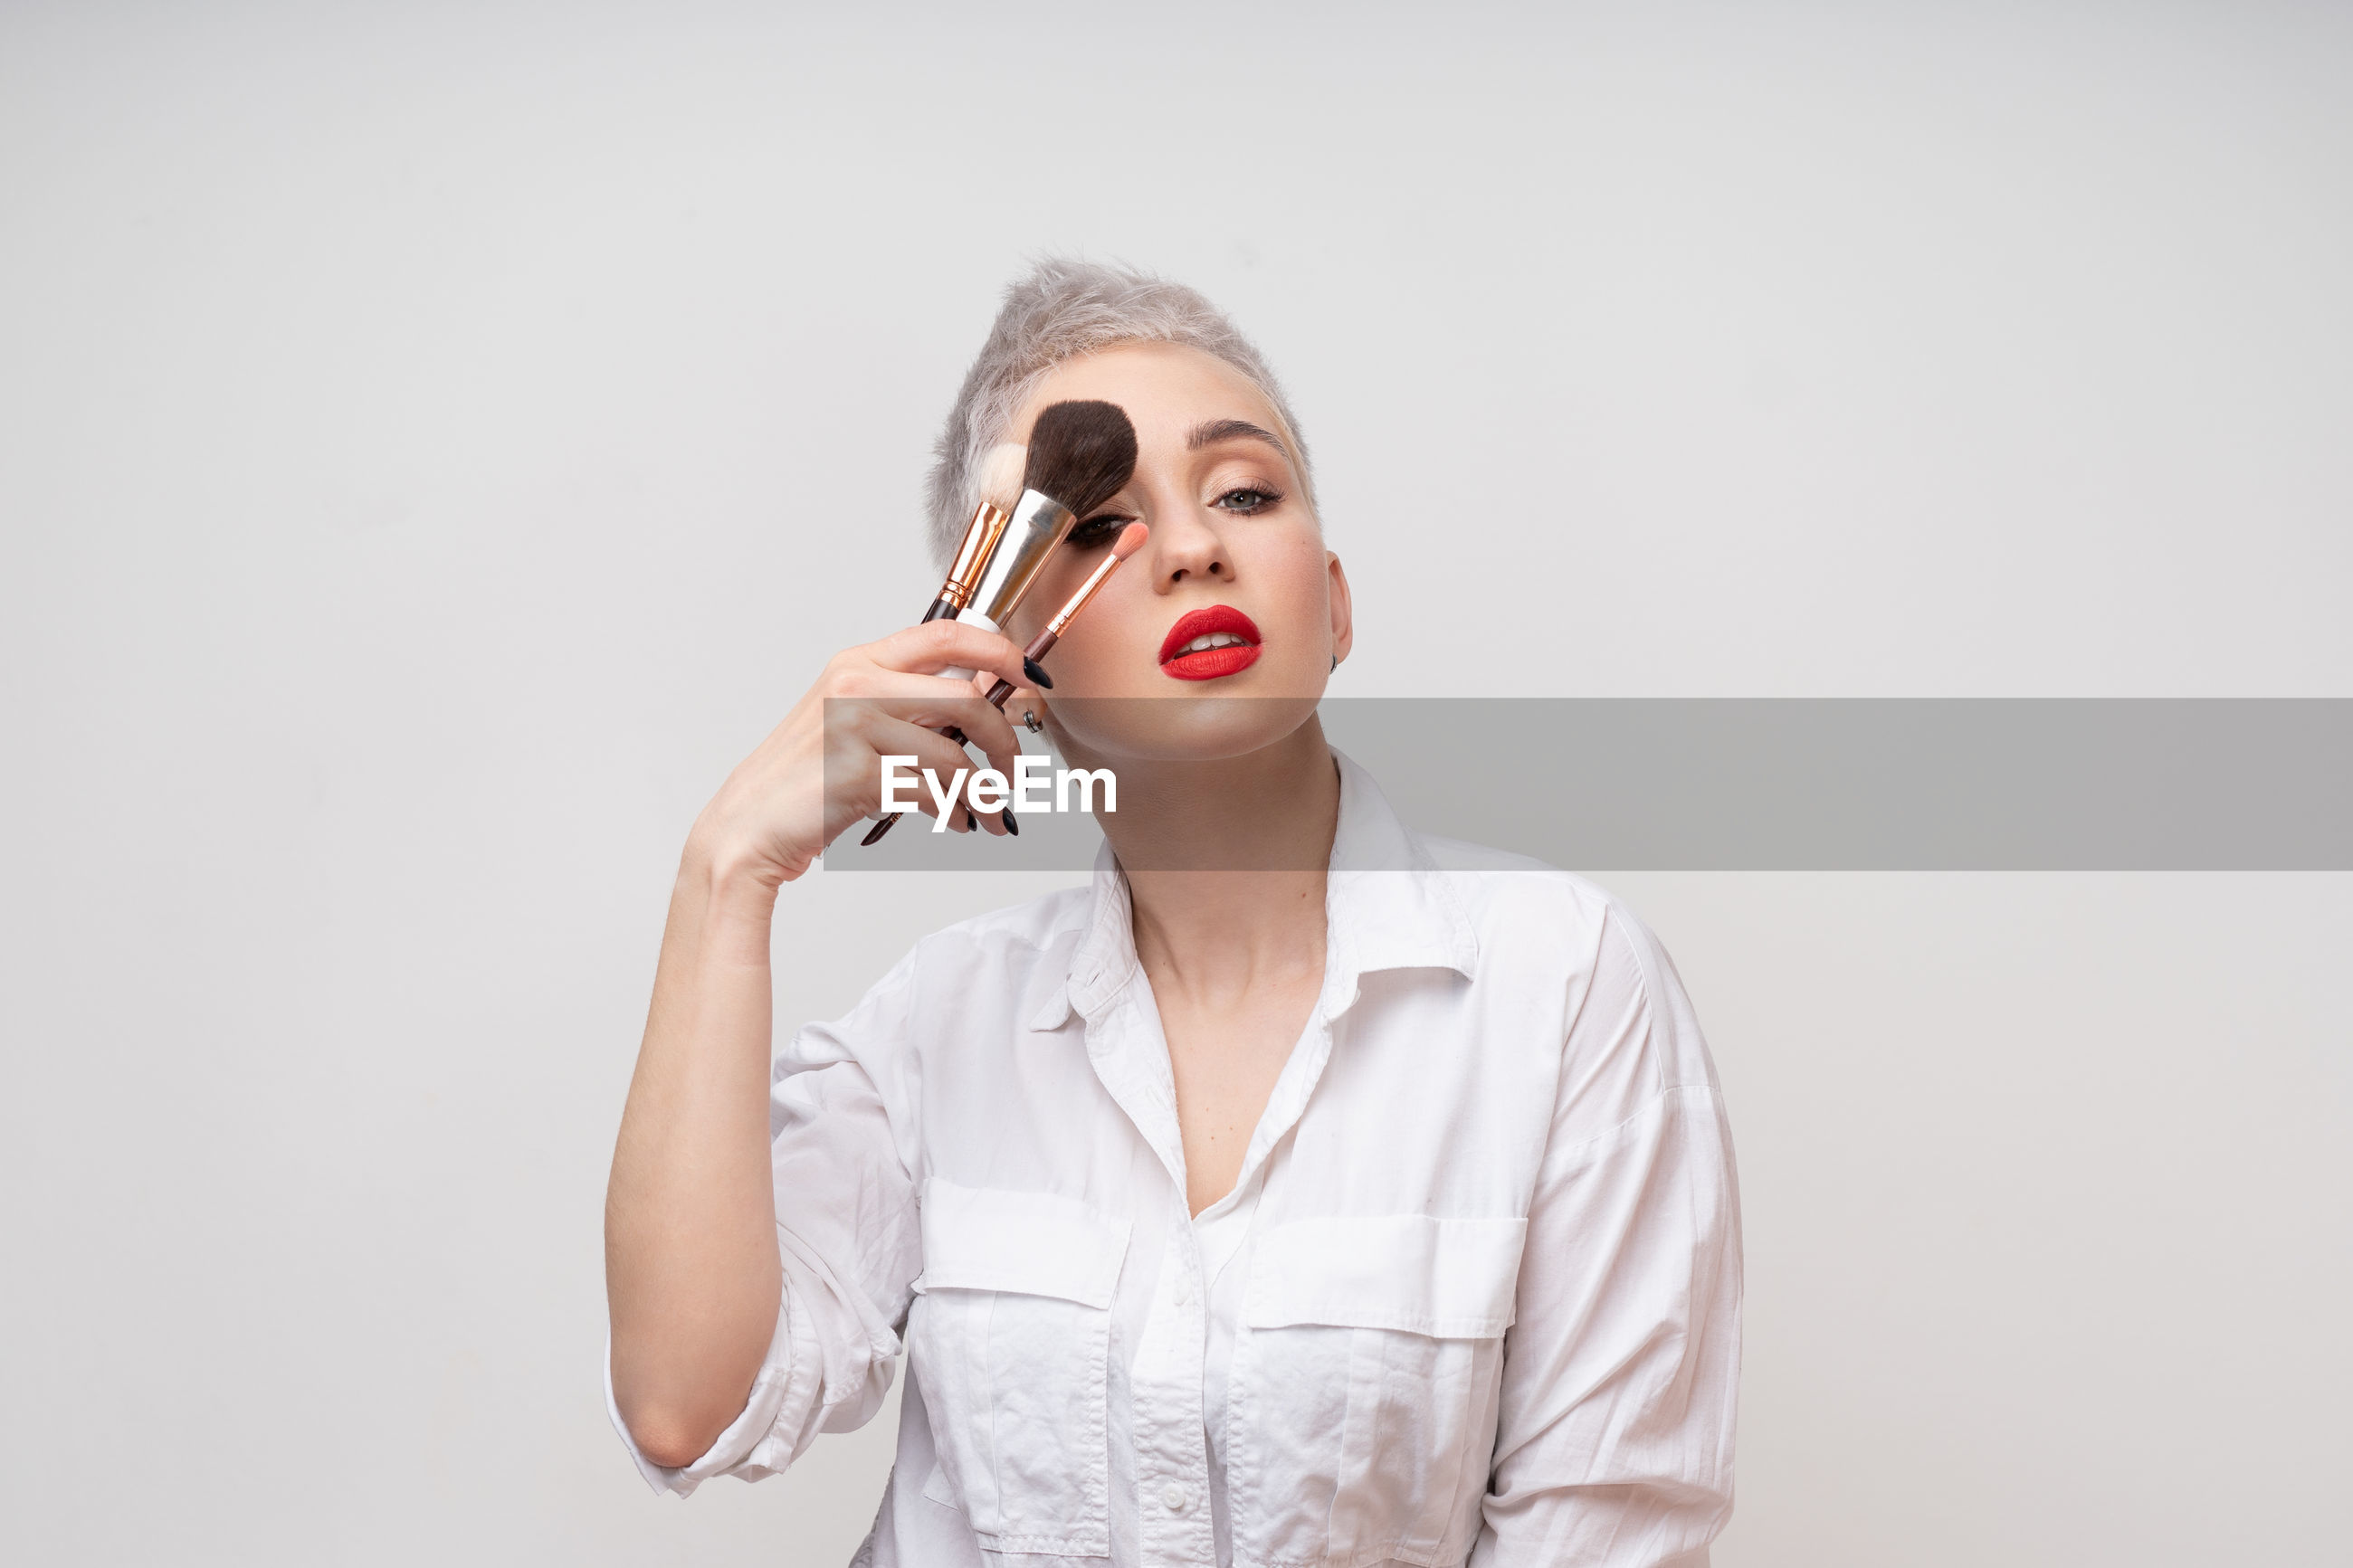 Portrait of young woman holding beauty products against white background